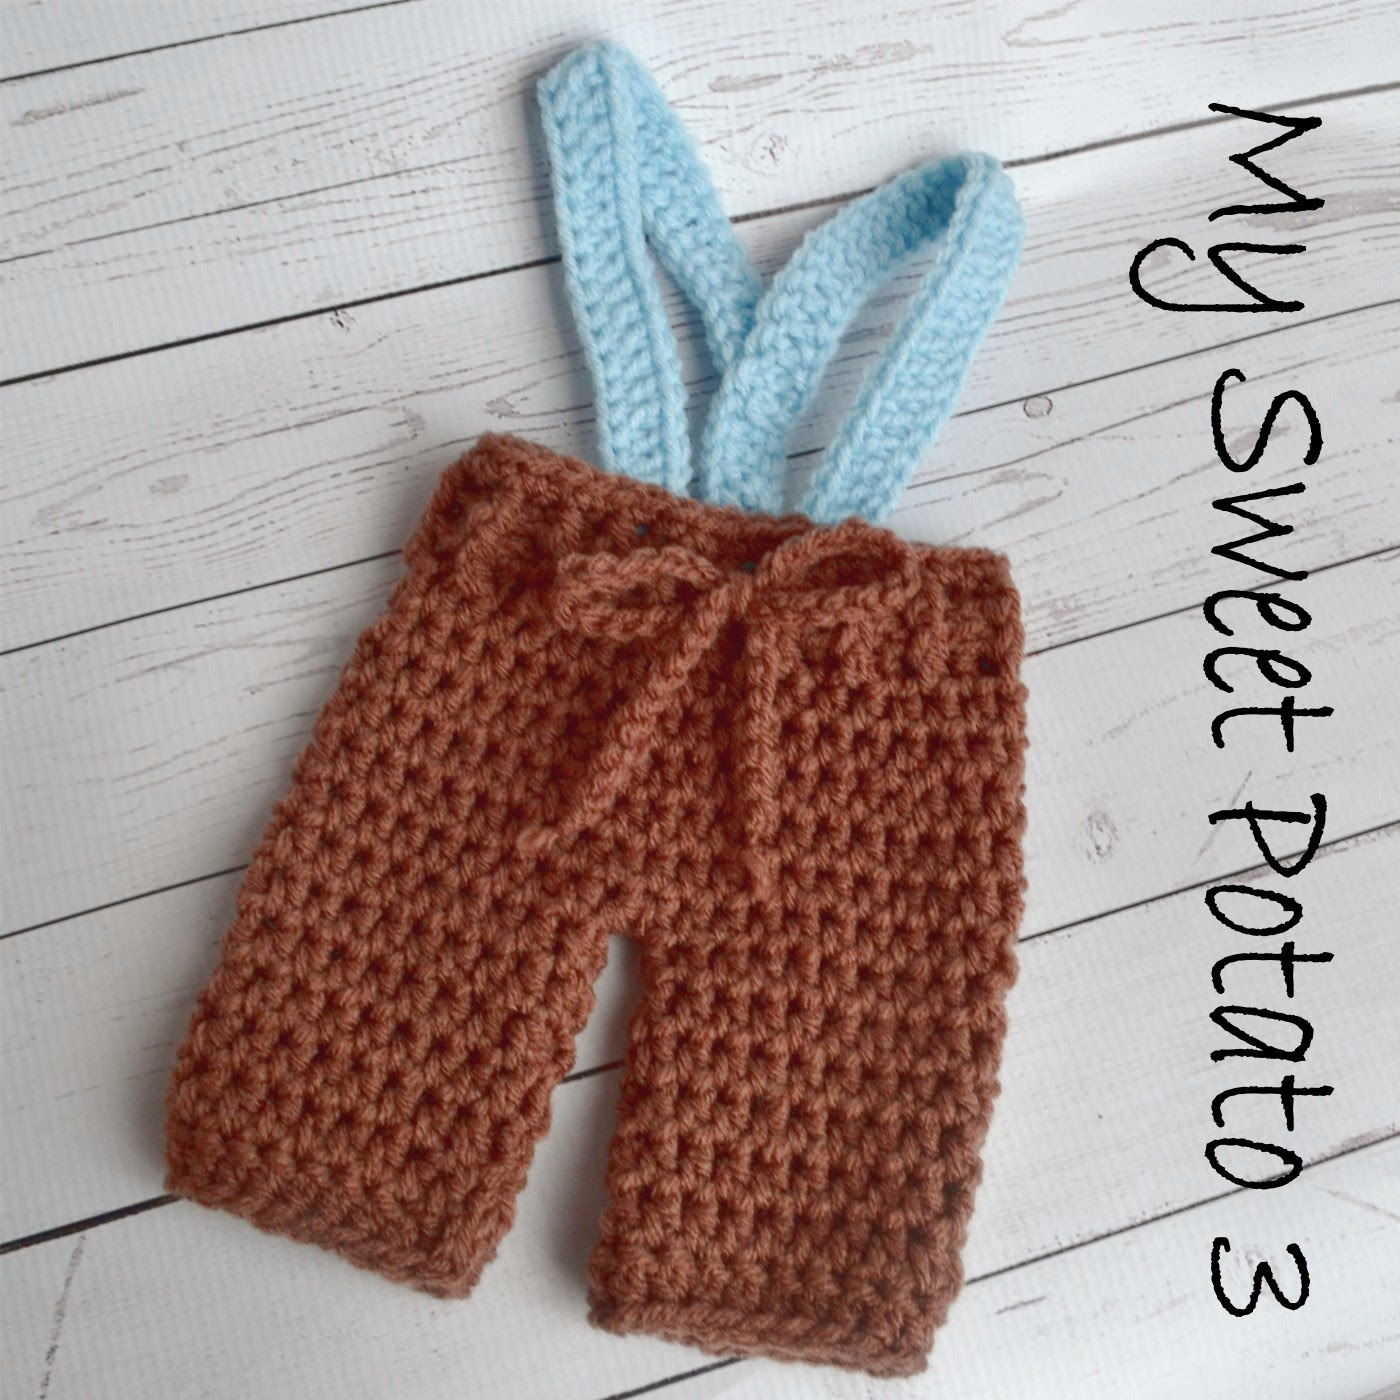 Pants, Shorts and Suspender Pattern Release - Sweet Potato 3